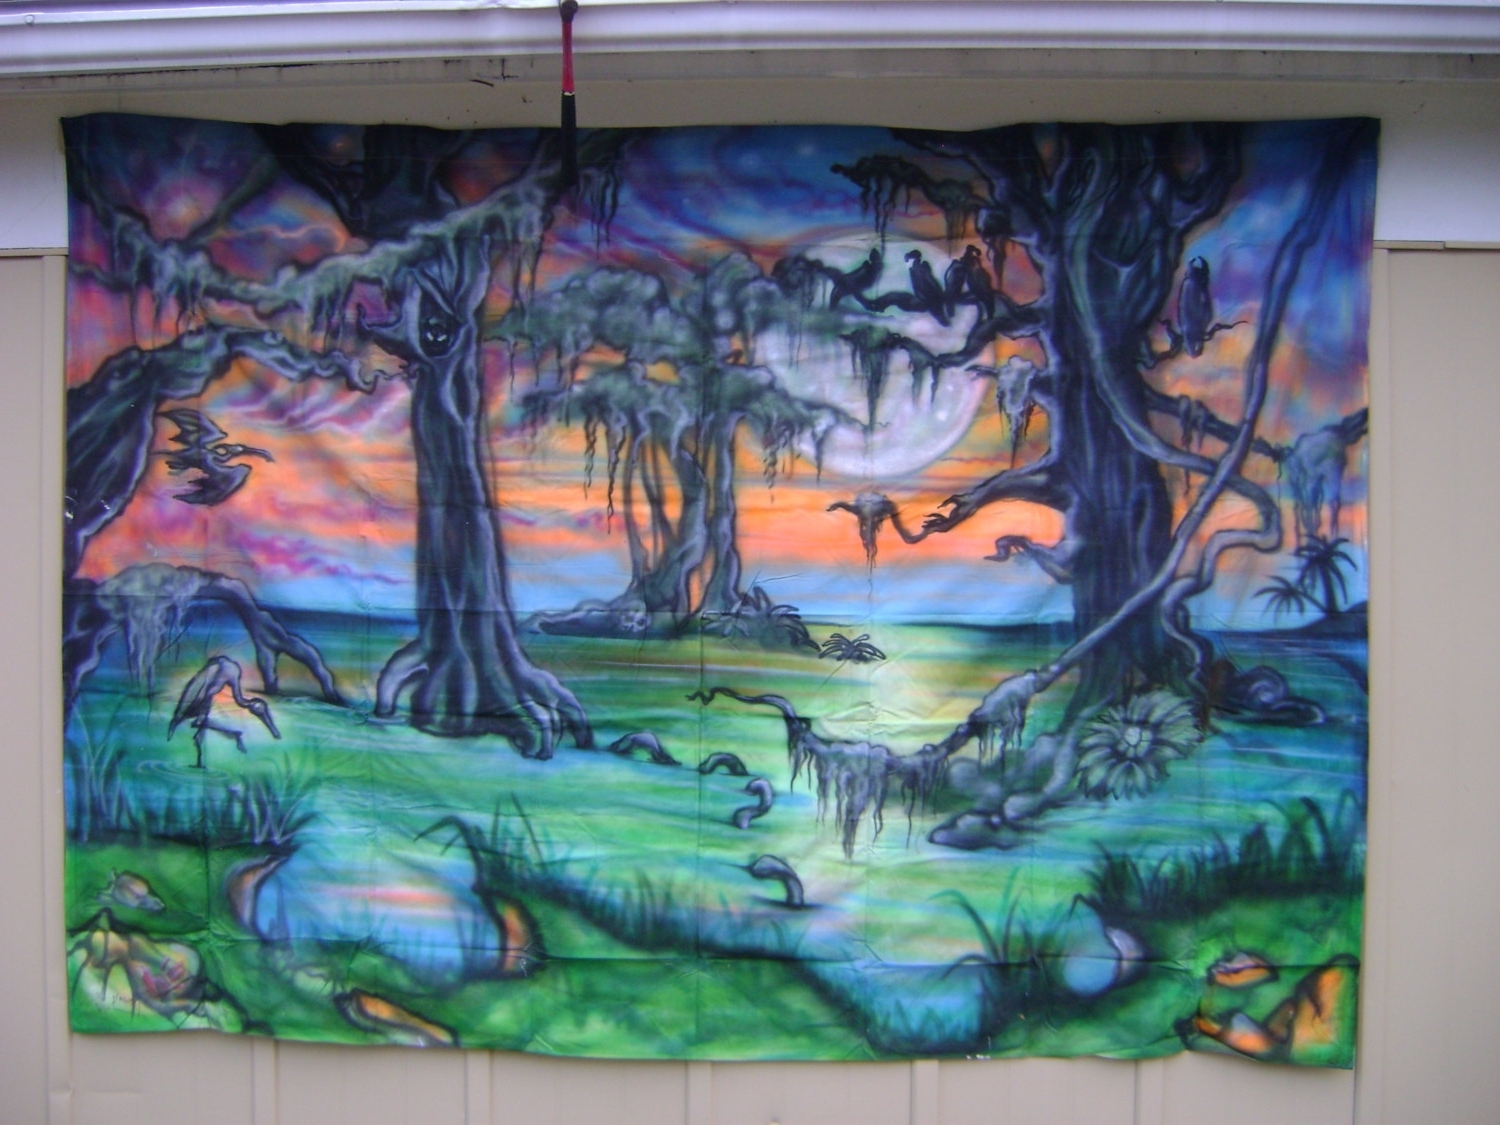 "Airbrush Wall Art Within Well Liked Murky Swamp Scene Airbrushed On Cotton""uber G"" At Uber (View 3 of 15)"